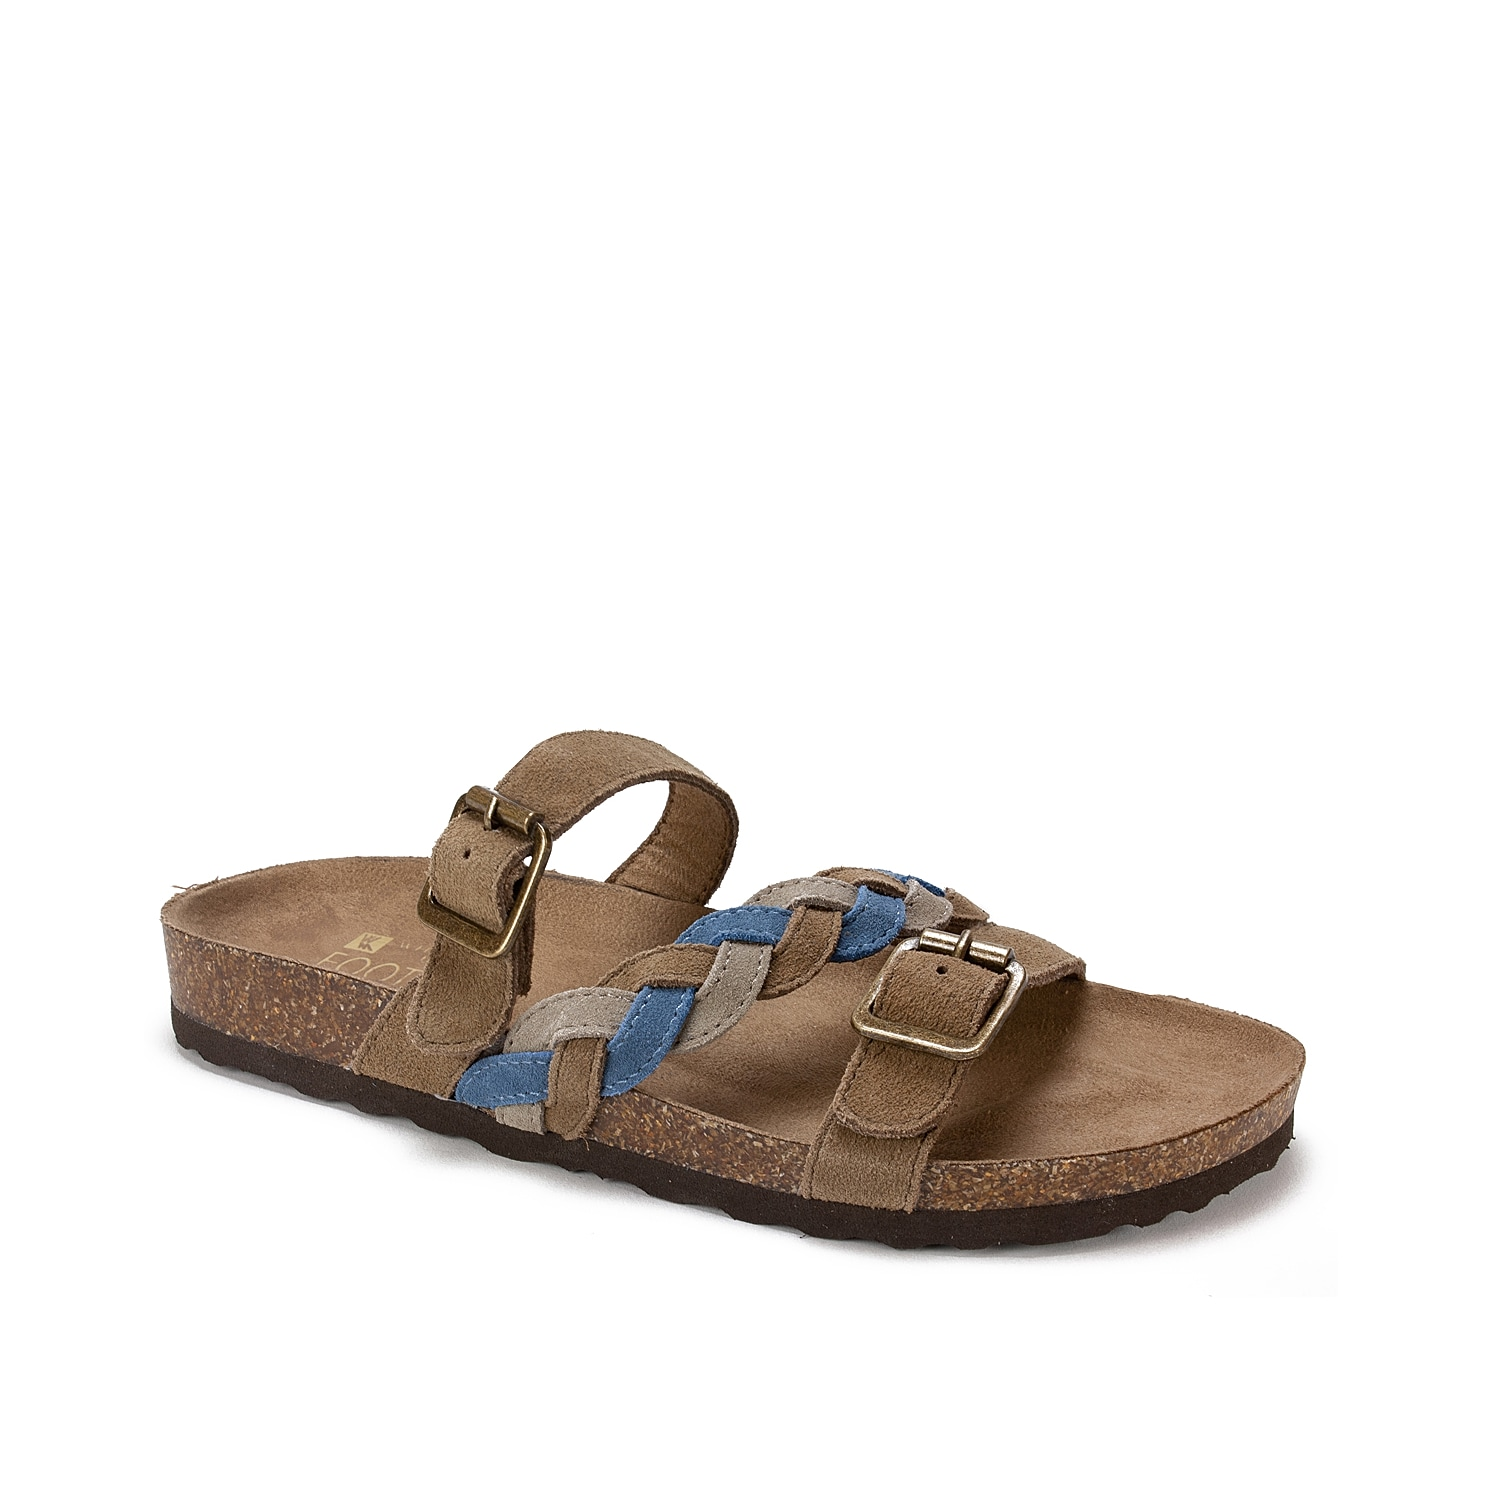 Slide into these comfy leather sandals to complete your warm weather look. Classic and versatile, the White Mountain Huntington slide sandal will become a go-to flat in your summer wardrobe.